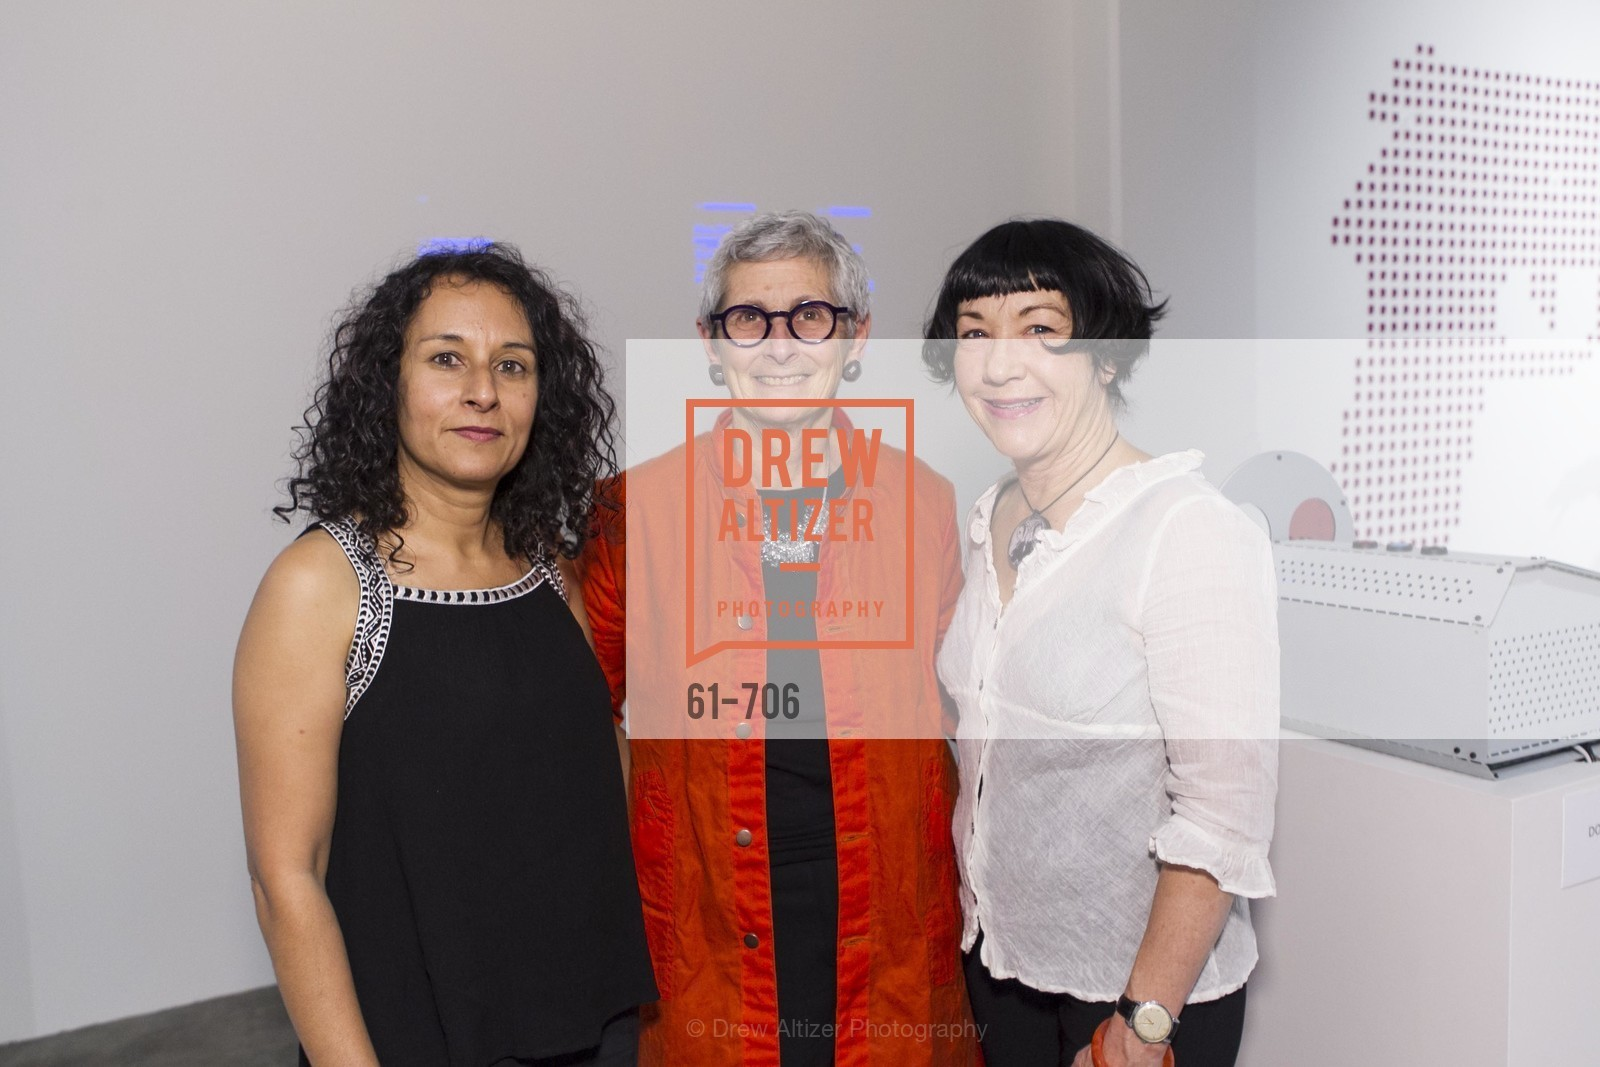 Tasneem Karimbhai, Marion Brenner, Amy van Every, Exhibit Opening at the MUSEUM OF CRAFT AND DESIGN - Hands Off: New Dutch Design at the Confluence of Technology & Craft, US, May 8th, 2015,Drew Altizer, Drew Altizer Photography, full-service agency, private events, San Francisco photographer, photographer california